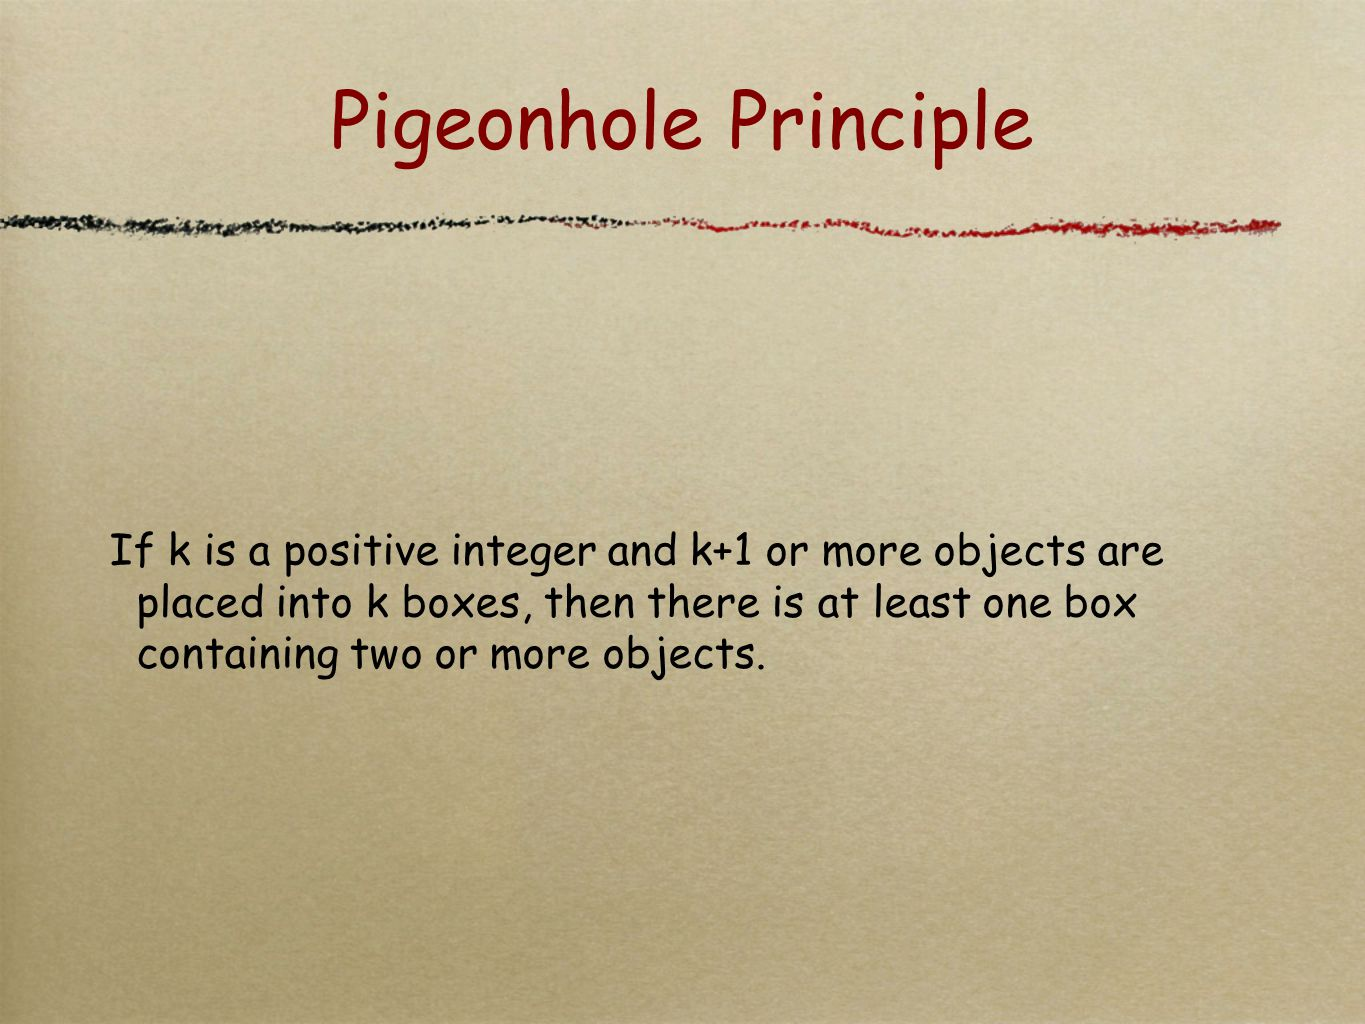 Pigeonhole Principle If k is a positive integer and k+1 or more objects are placed into k boxes, then there is at least one box containing two or more